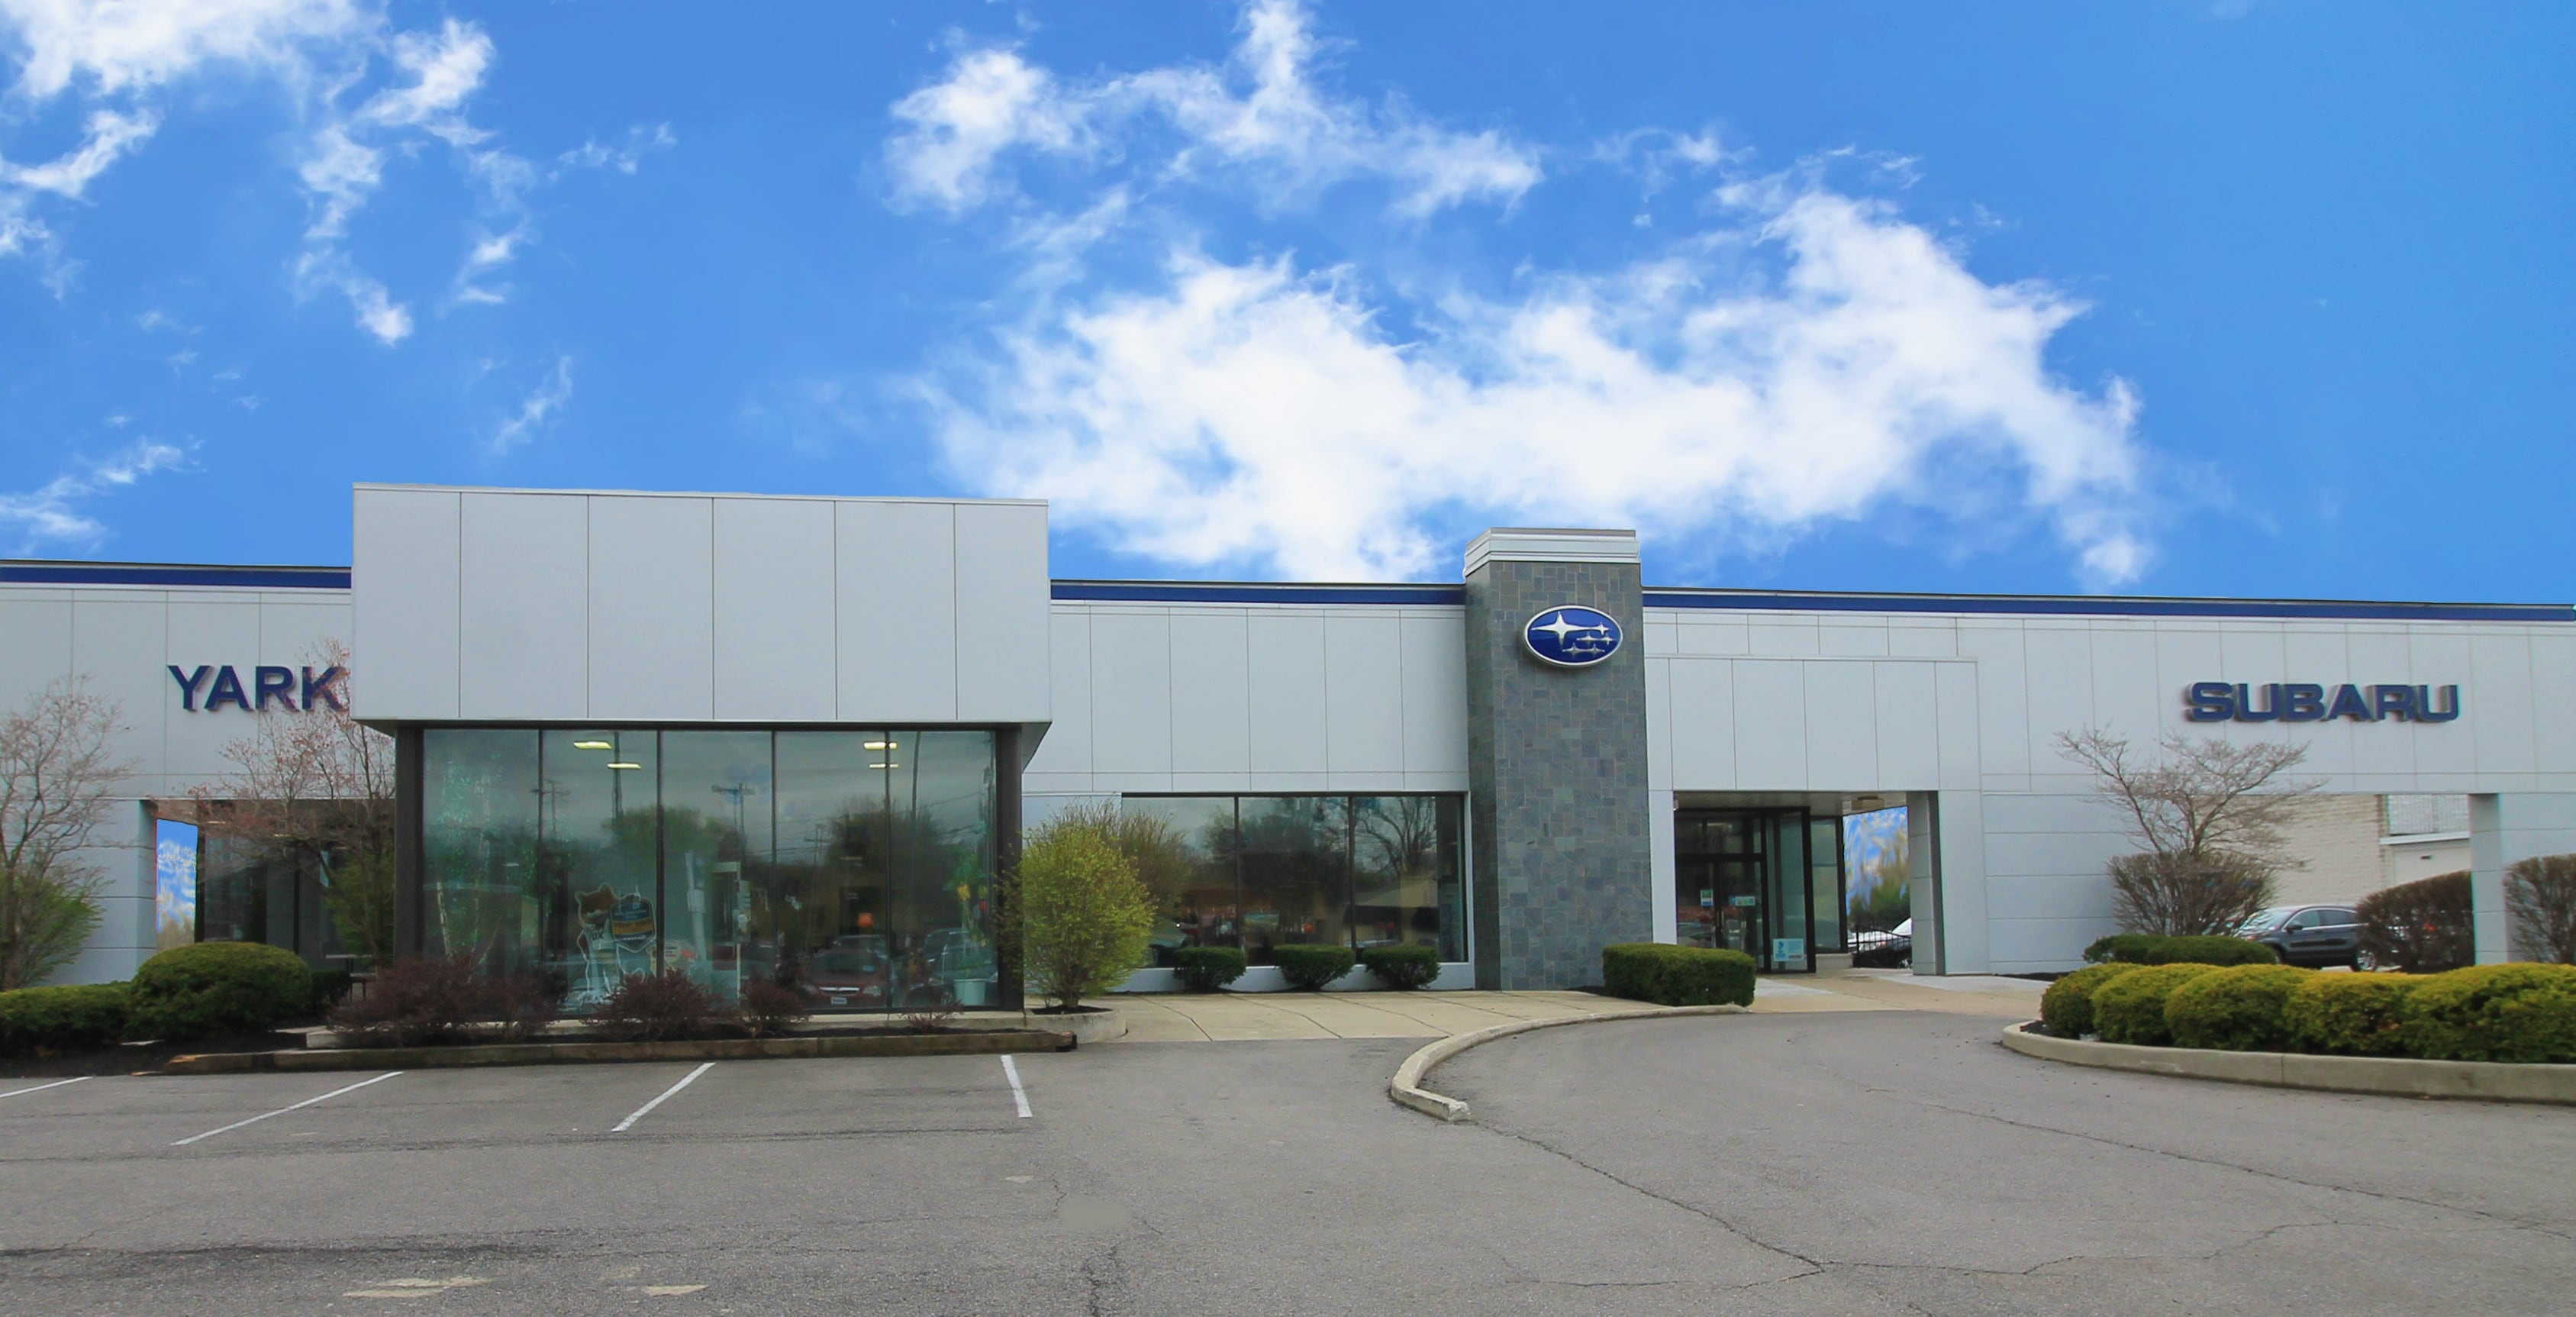 yark subaru subaru dealership in toledo oh subaru near me